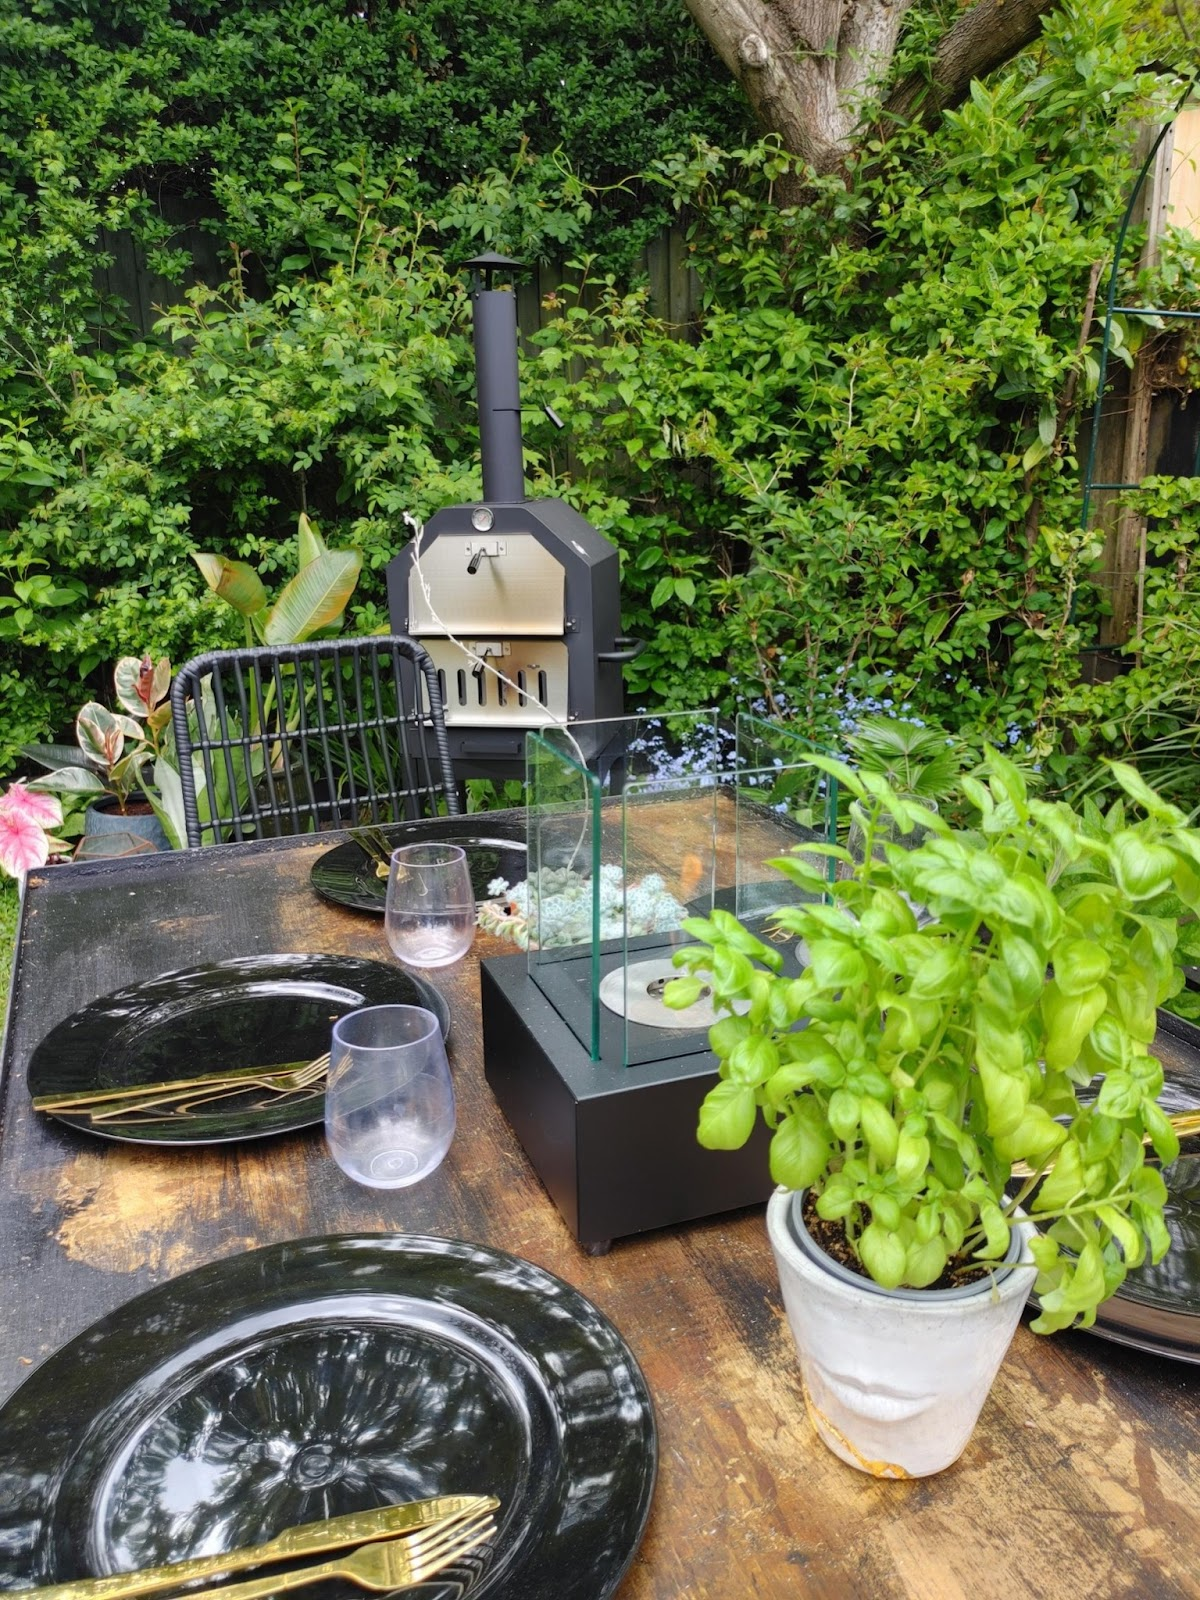 Garden makeover project by Bland Design